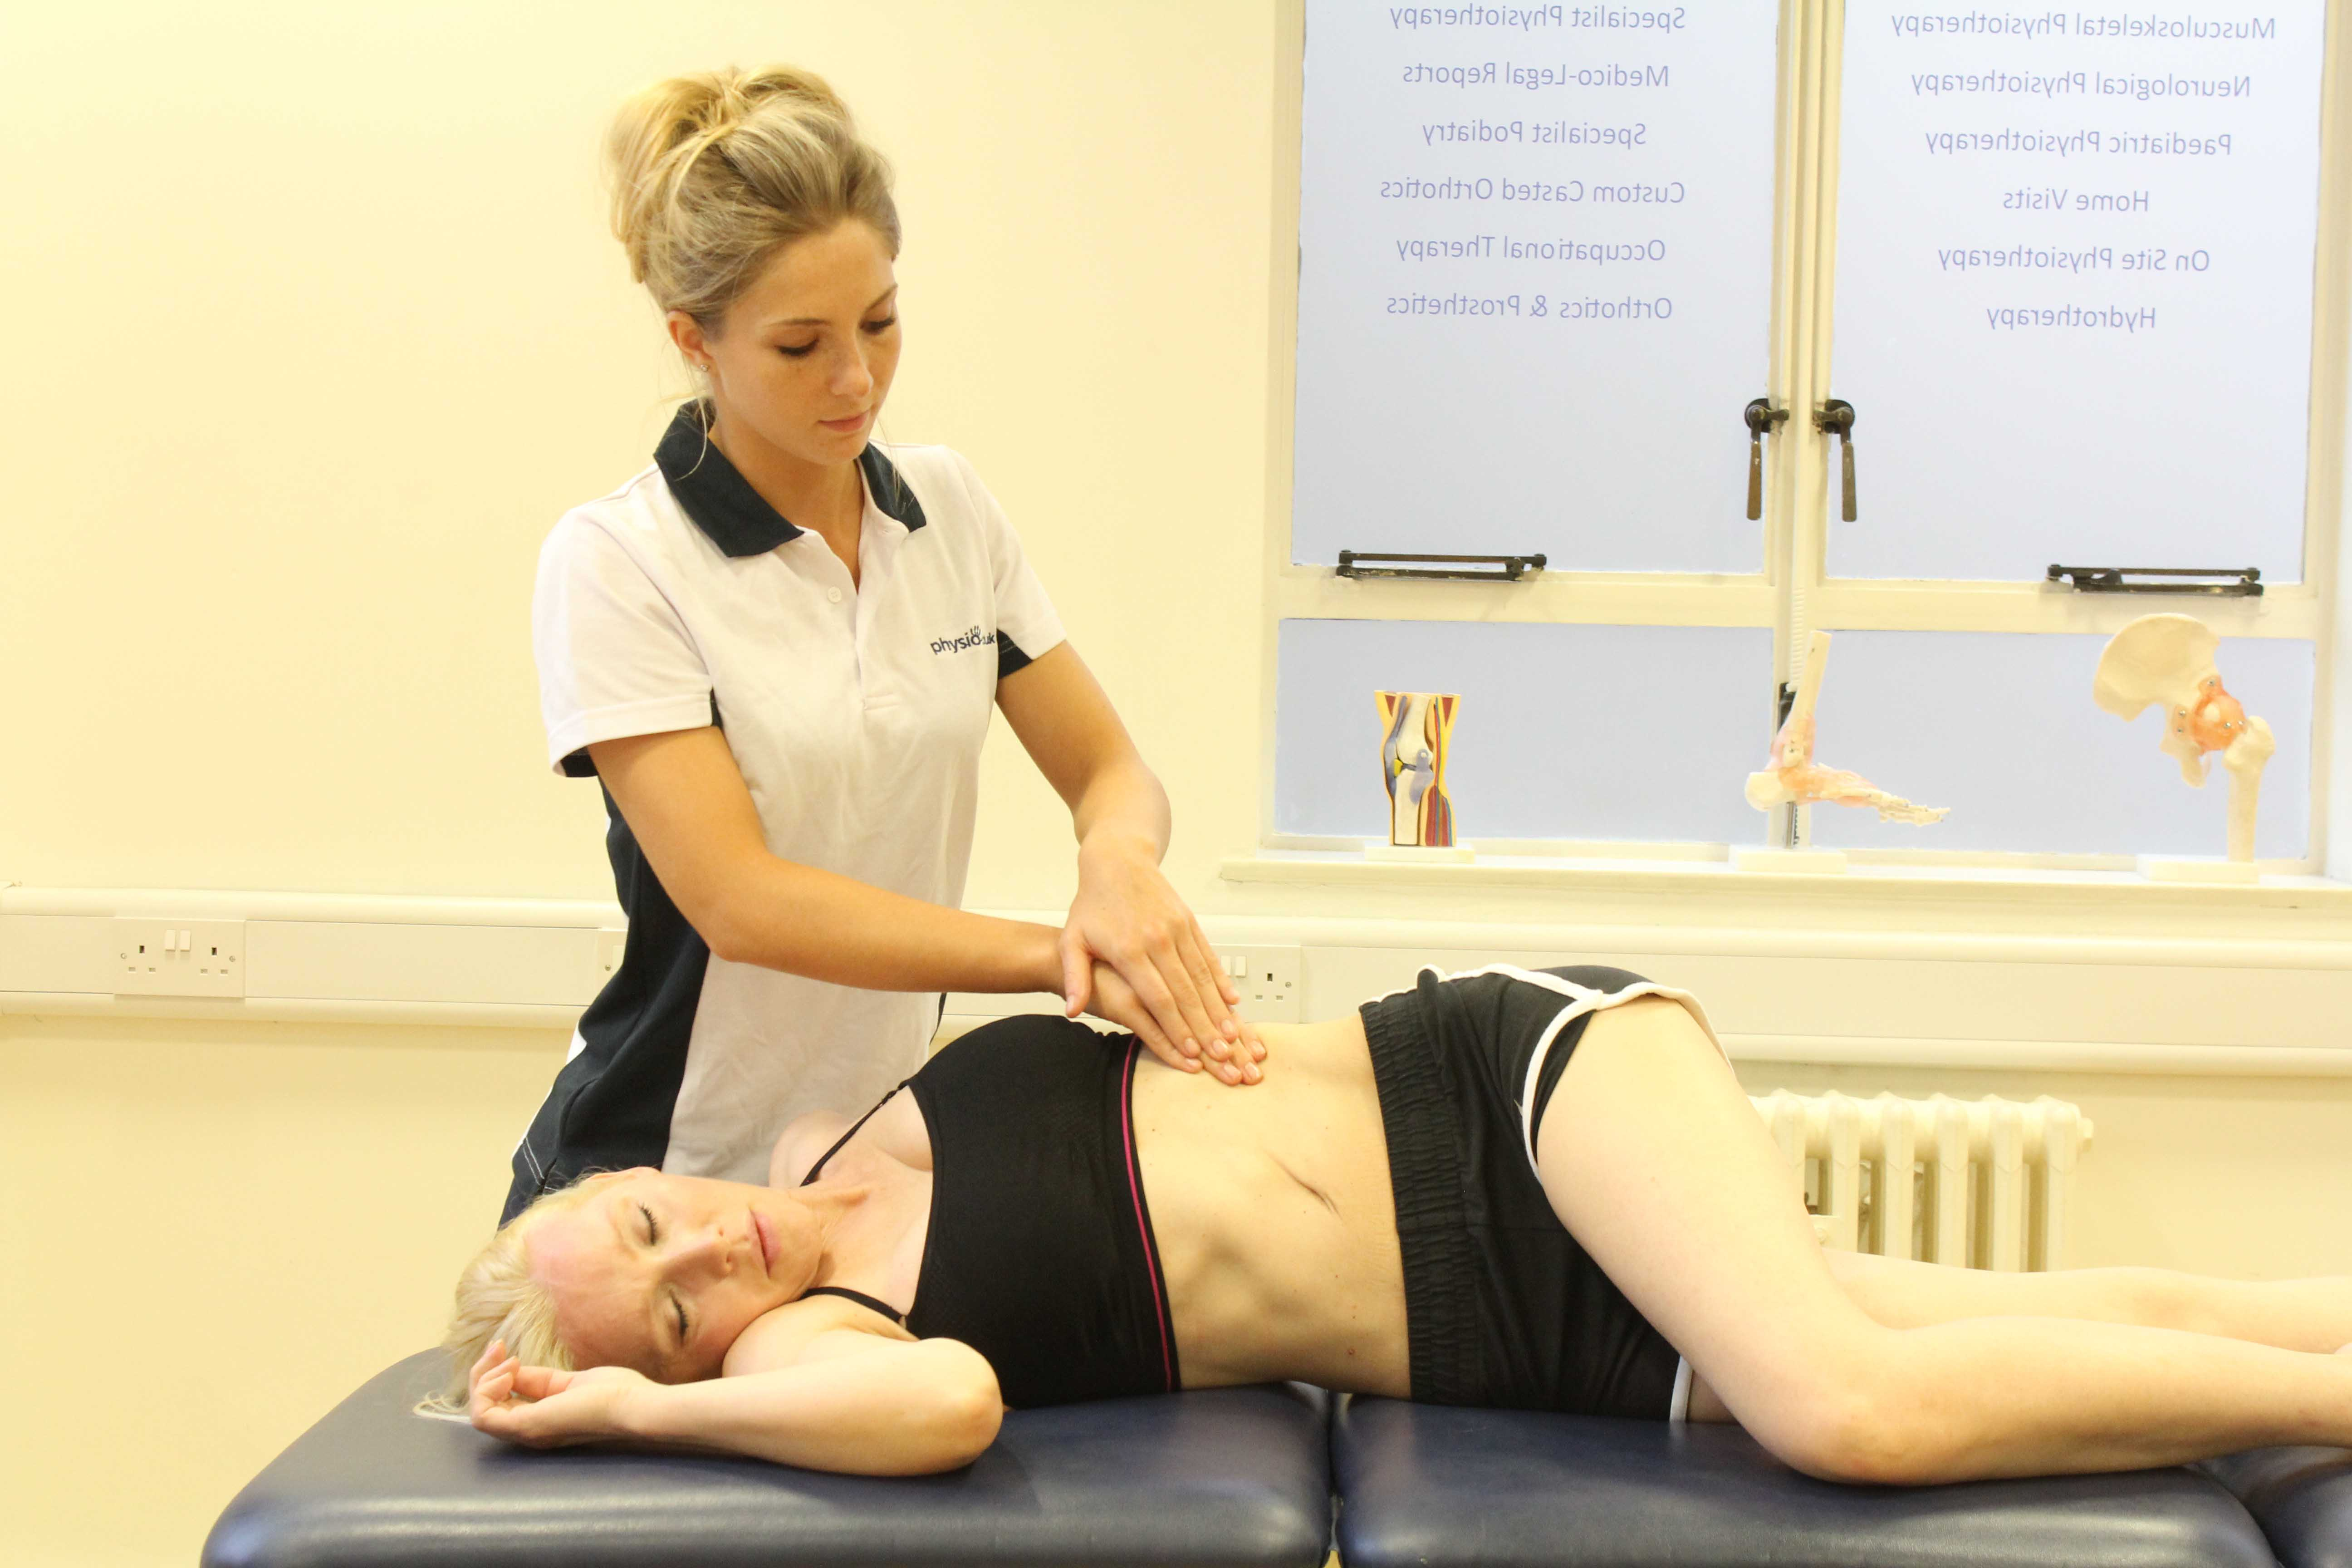 Soft tissue massage and stretch of the abdominal muscles by an experienced therapist